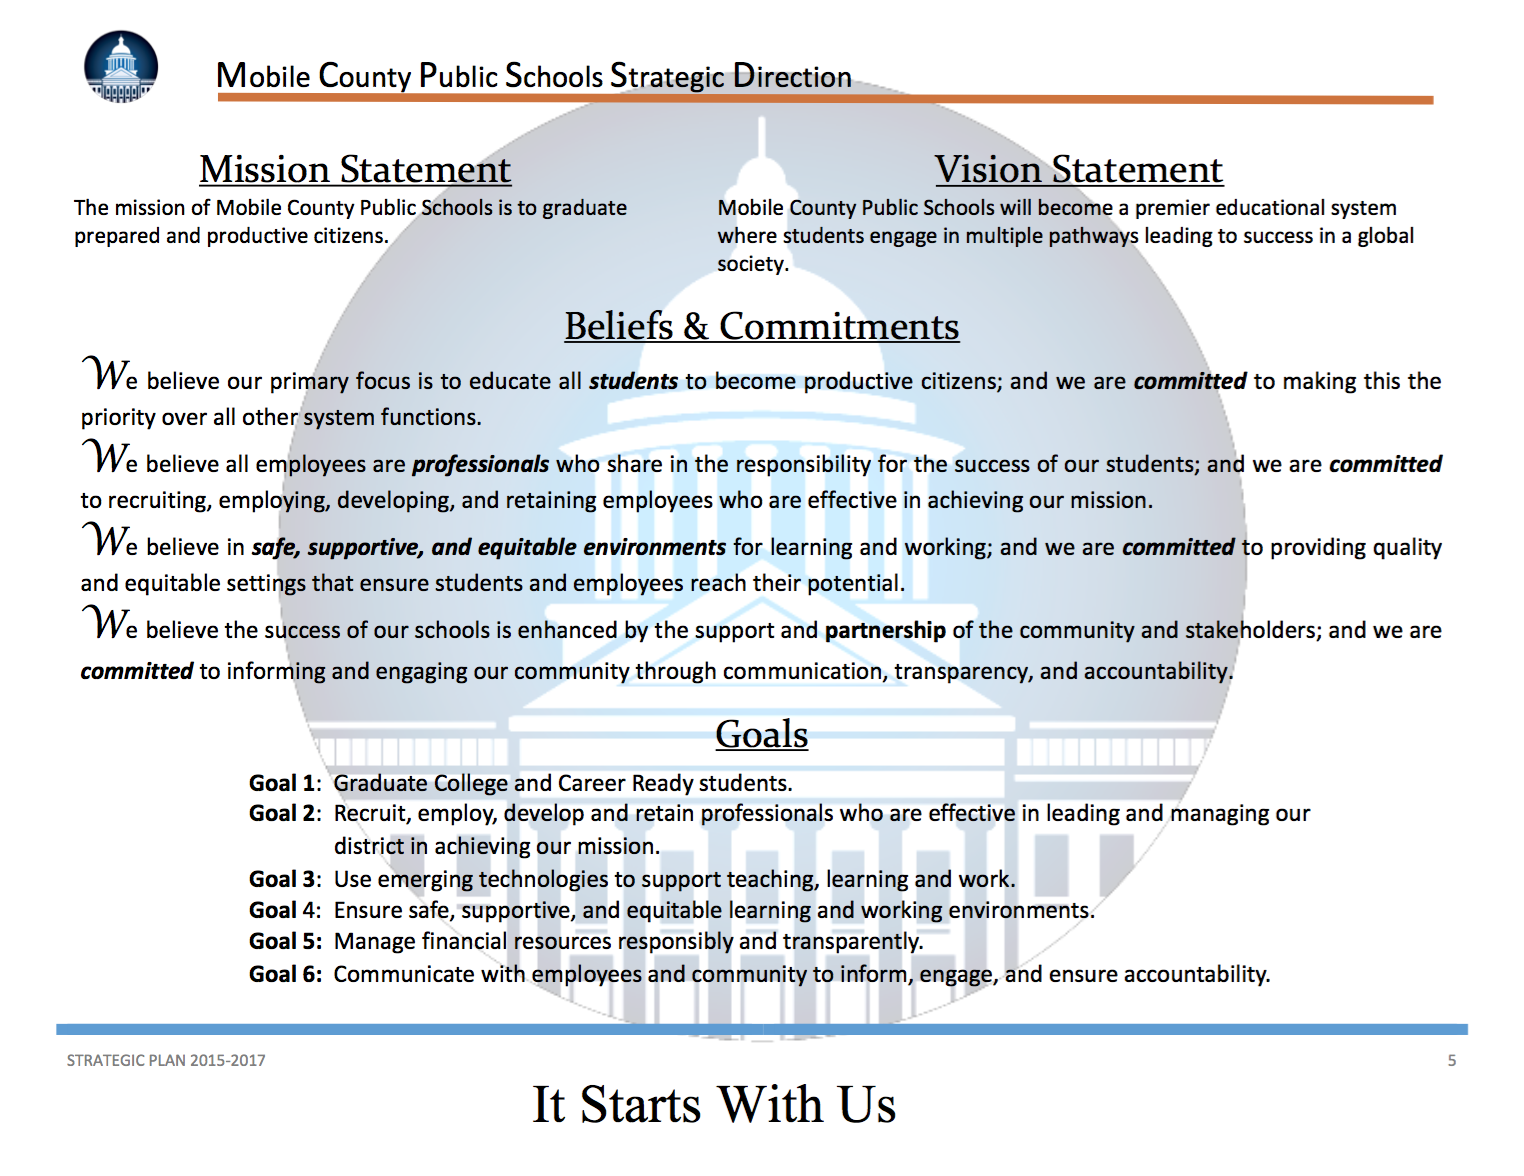 mobile county public schools the board beliefs commitments